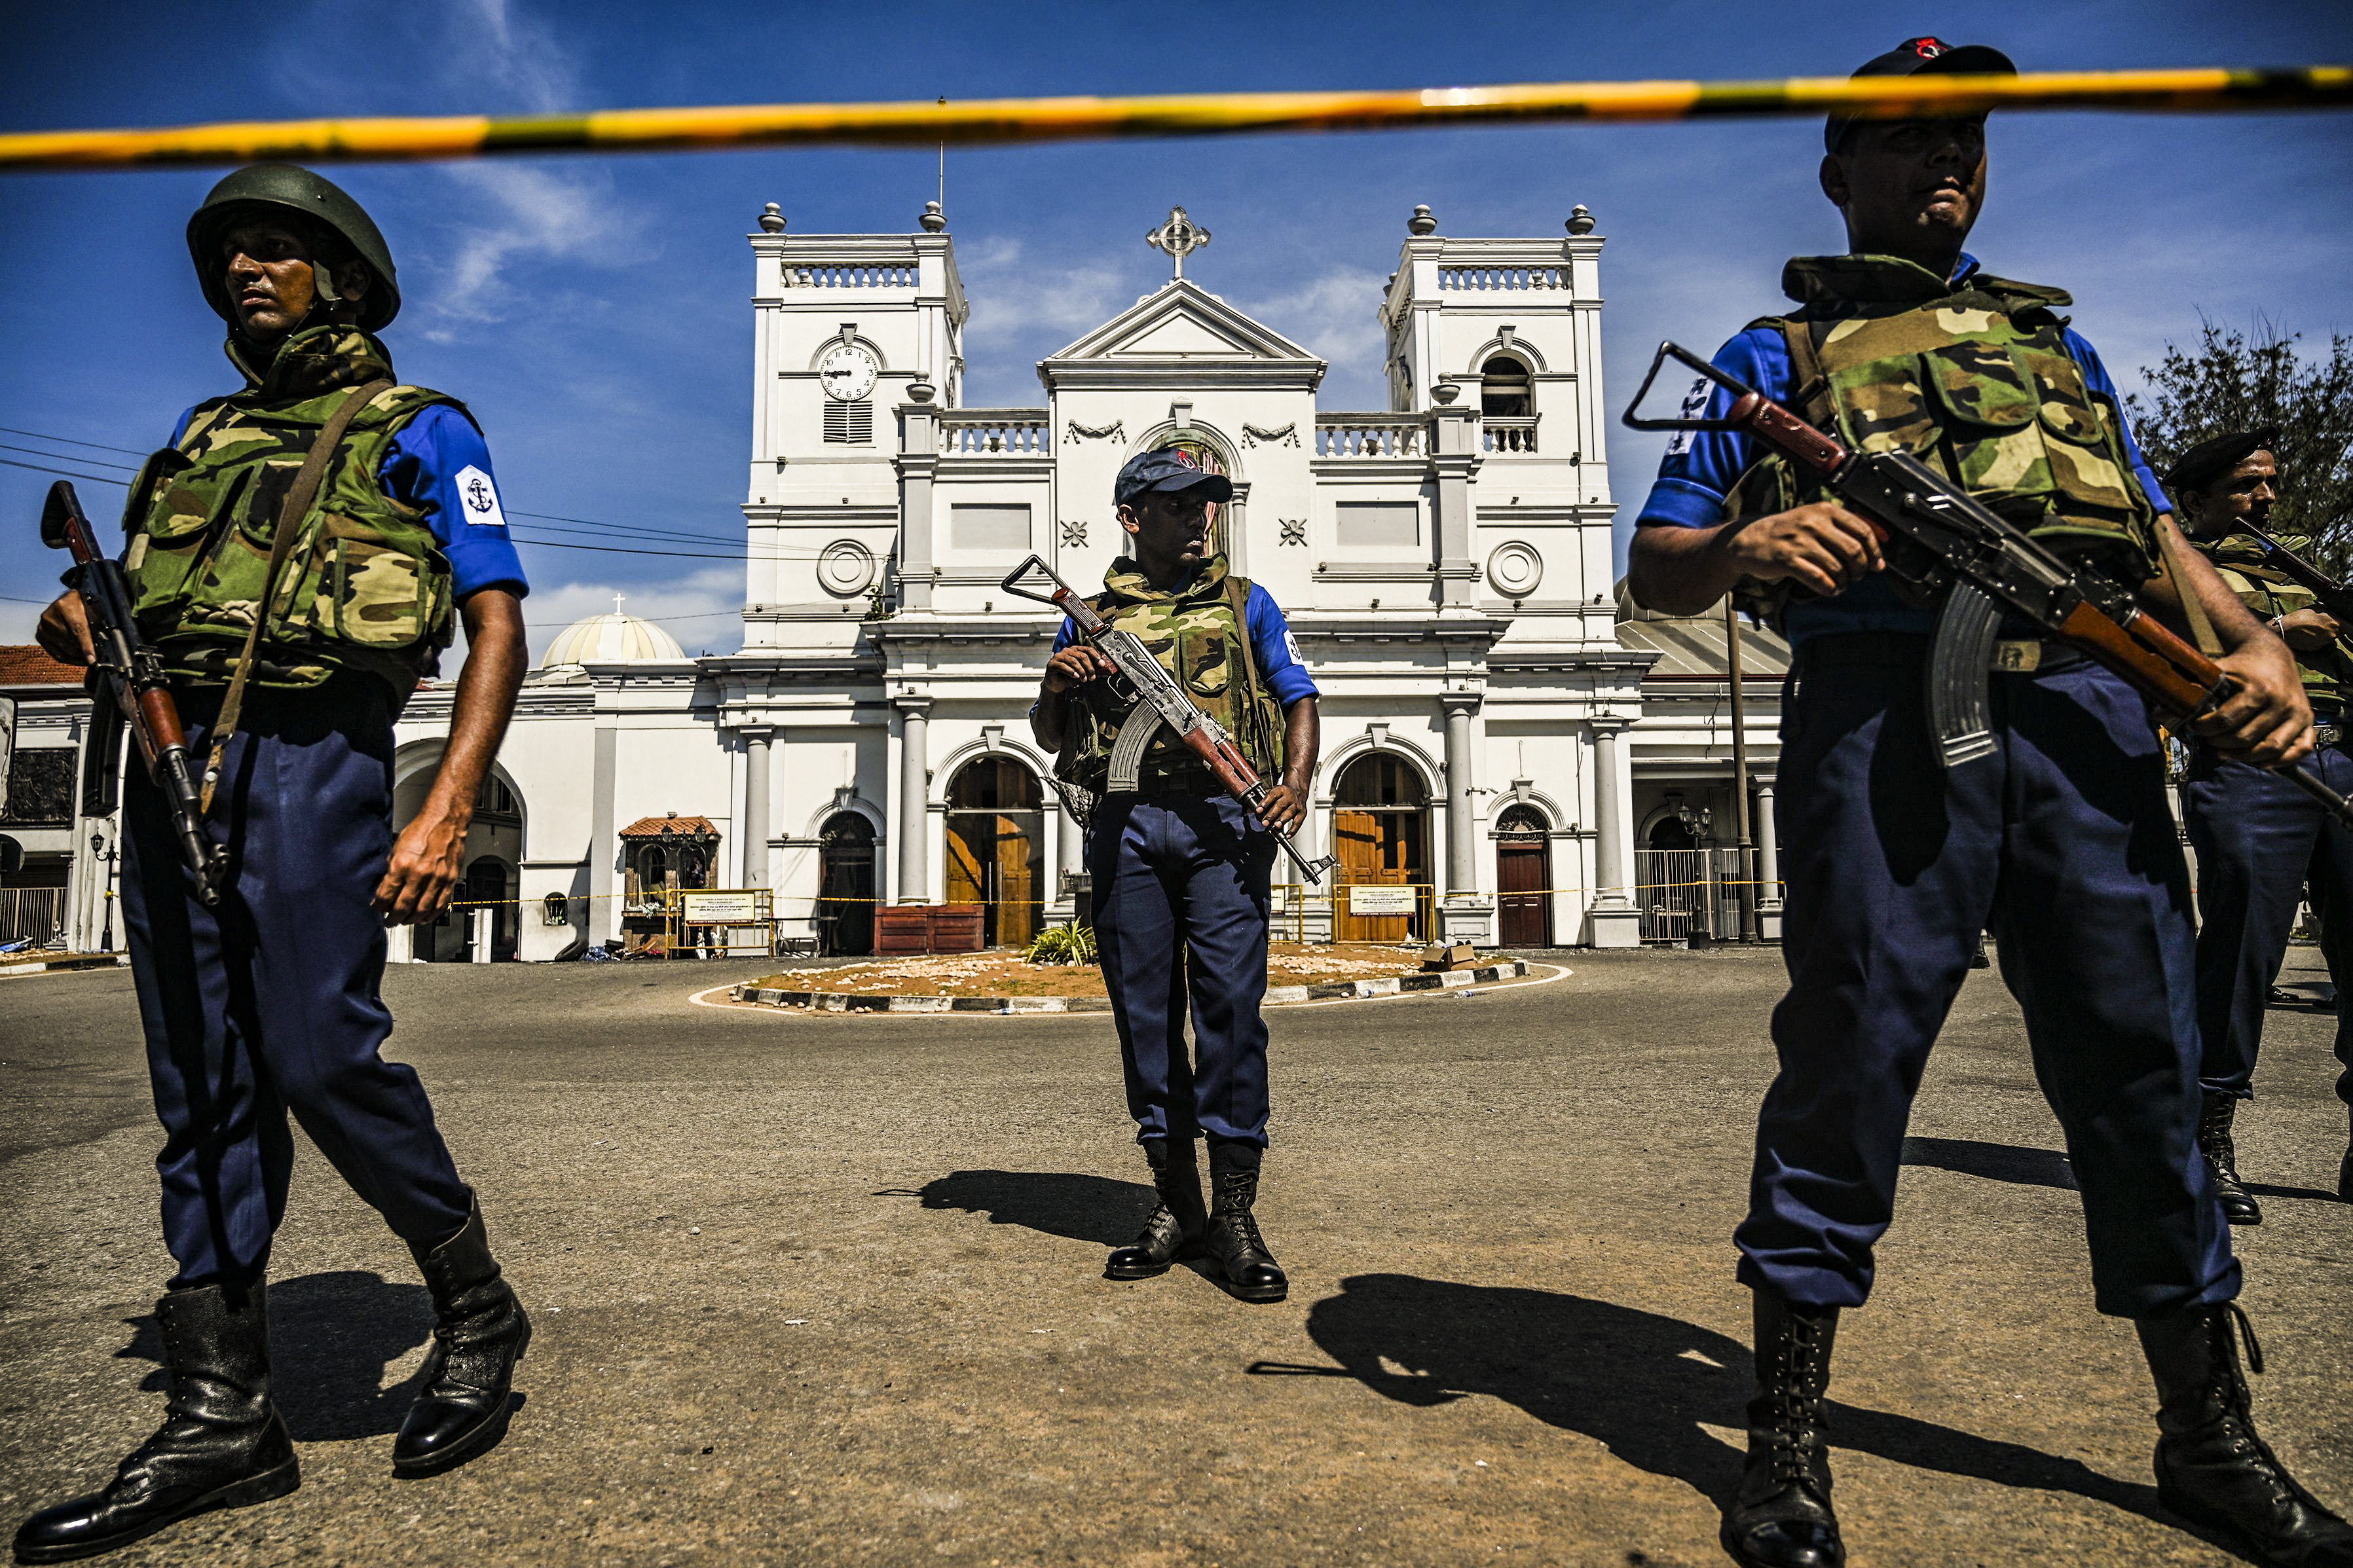 Security personnel stand guard outside St. Anthony's Shrine in Colombo, Sri Lanka, on April 22, 2019, a day after the church was hit in series of bomb blasts.